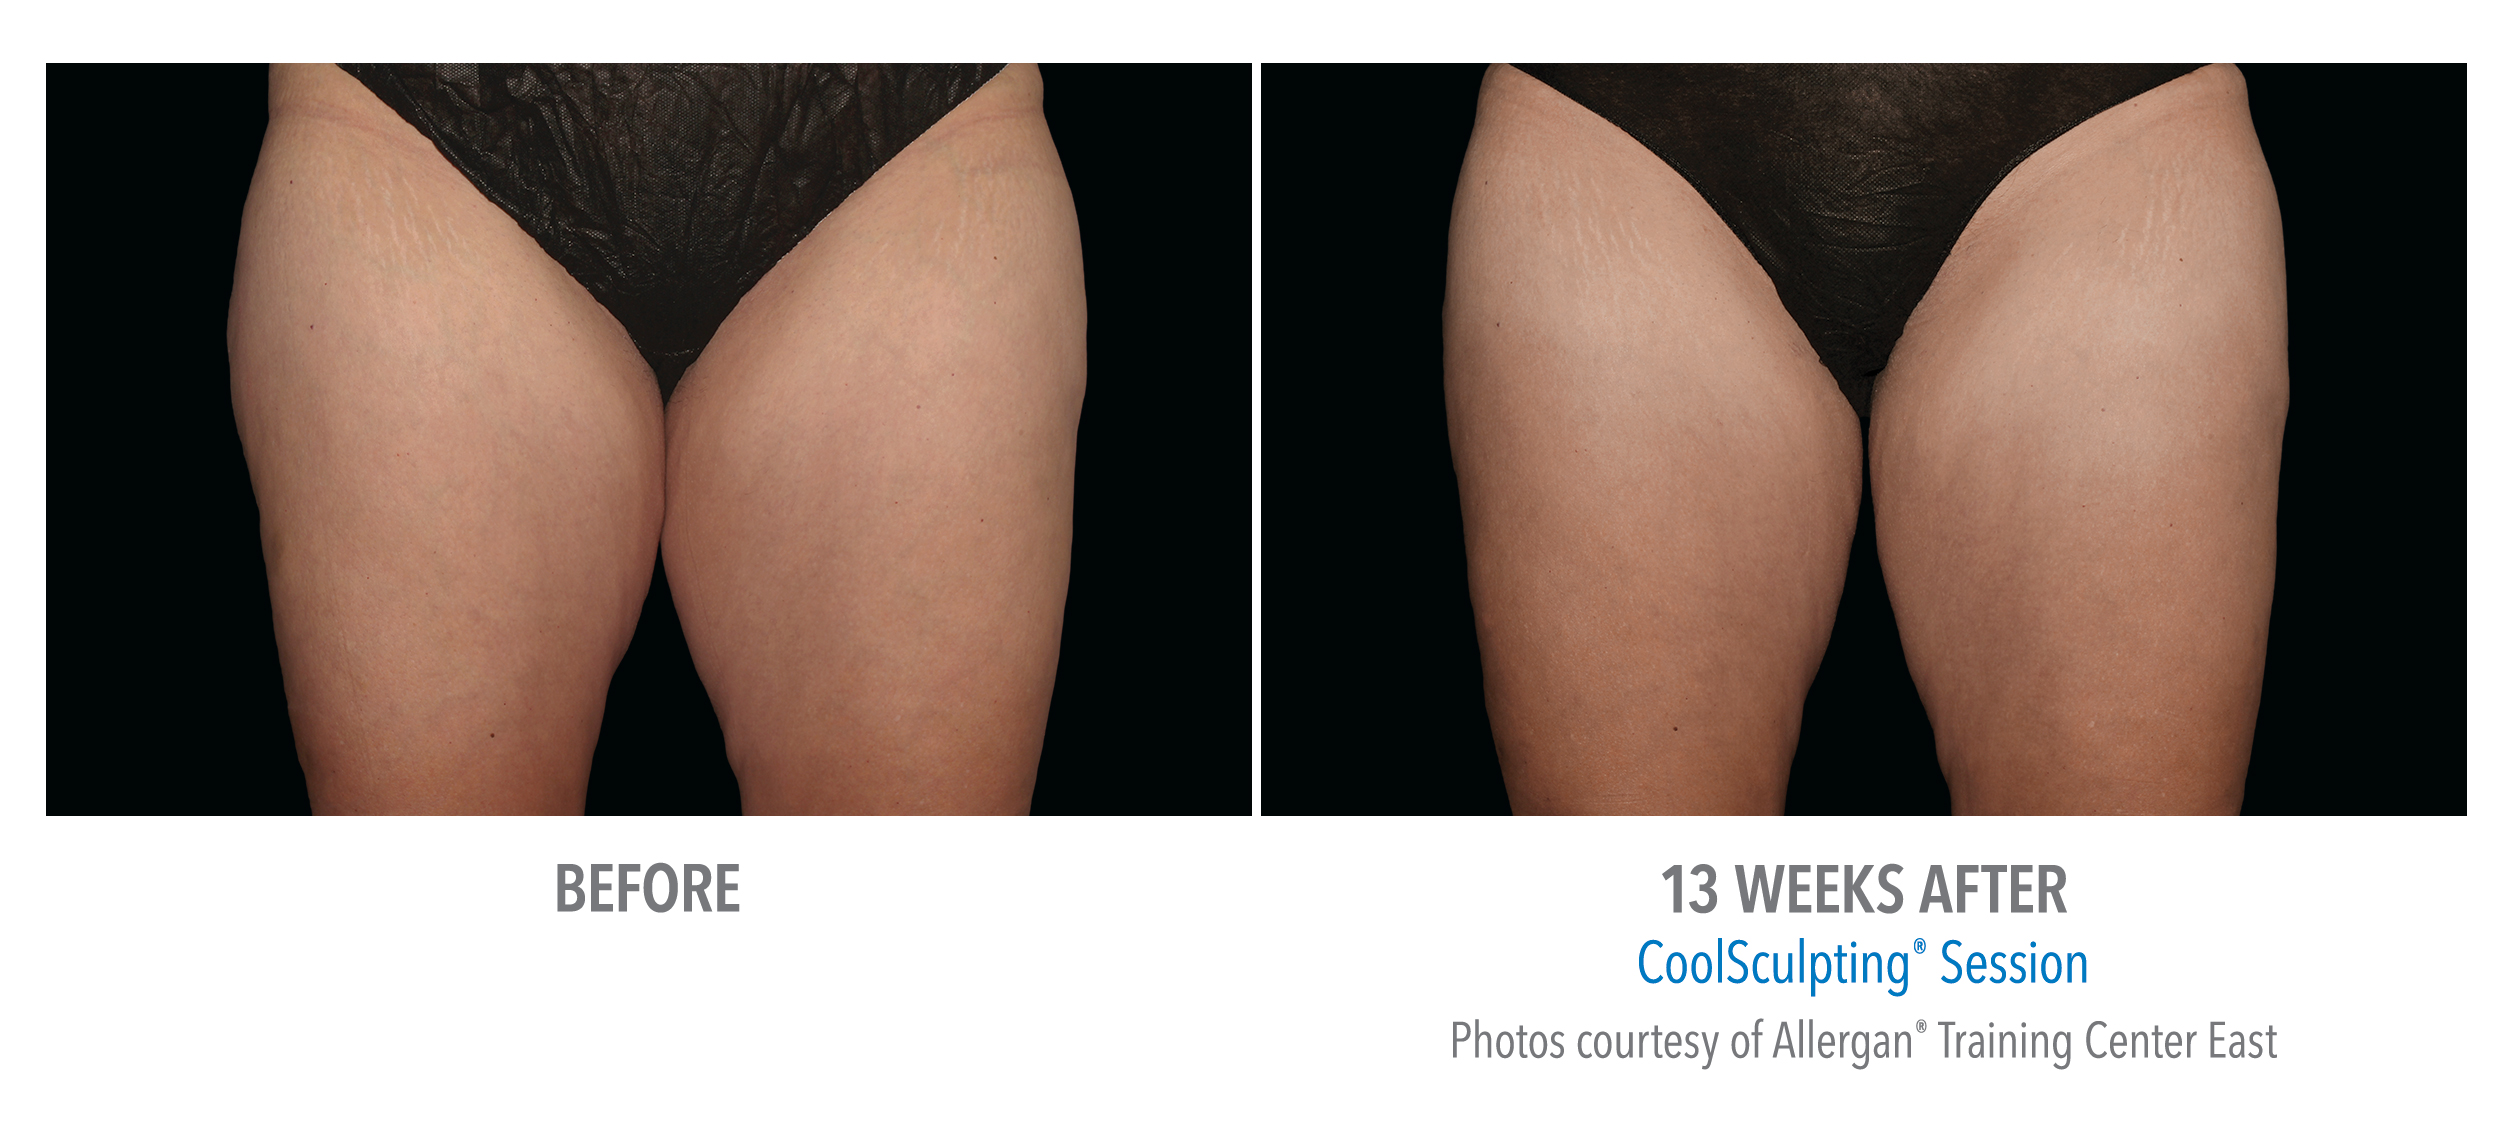 whittier-coolsculpting-thighs-inner-thigh-5